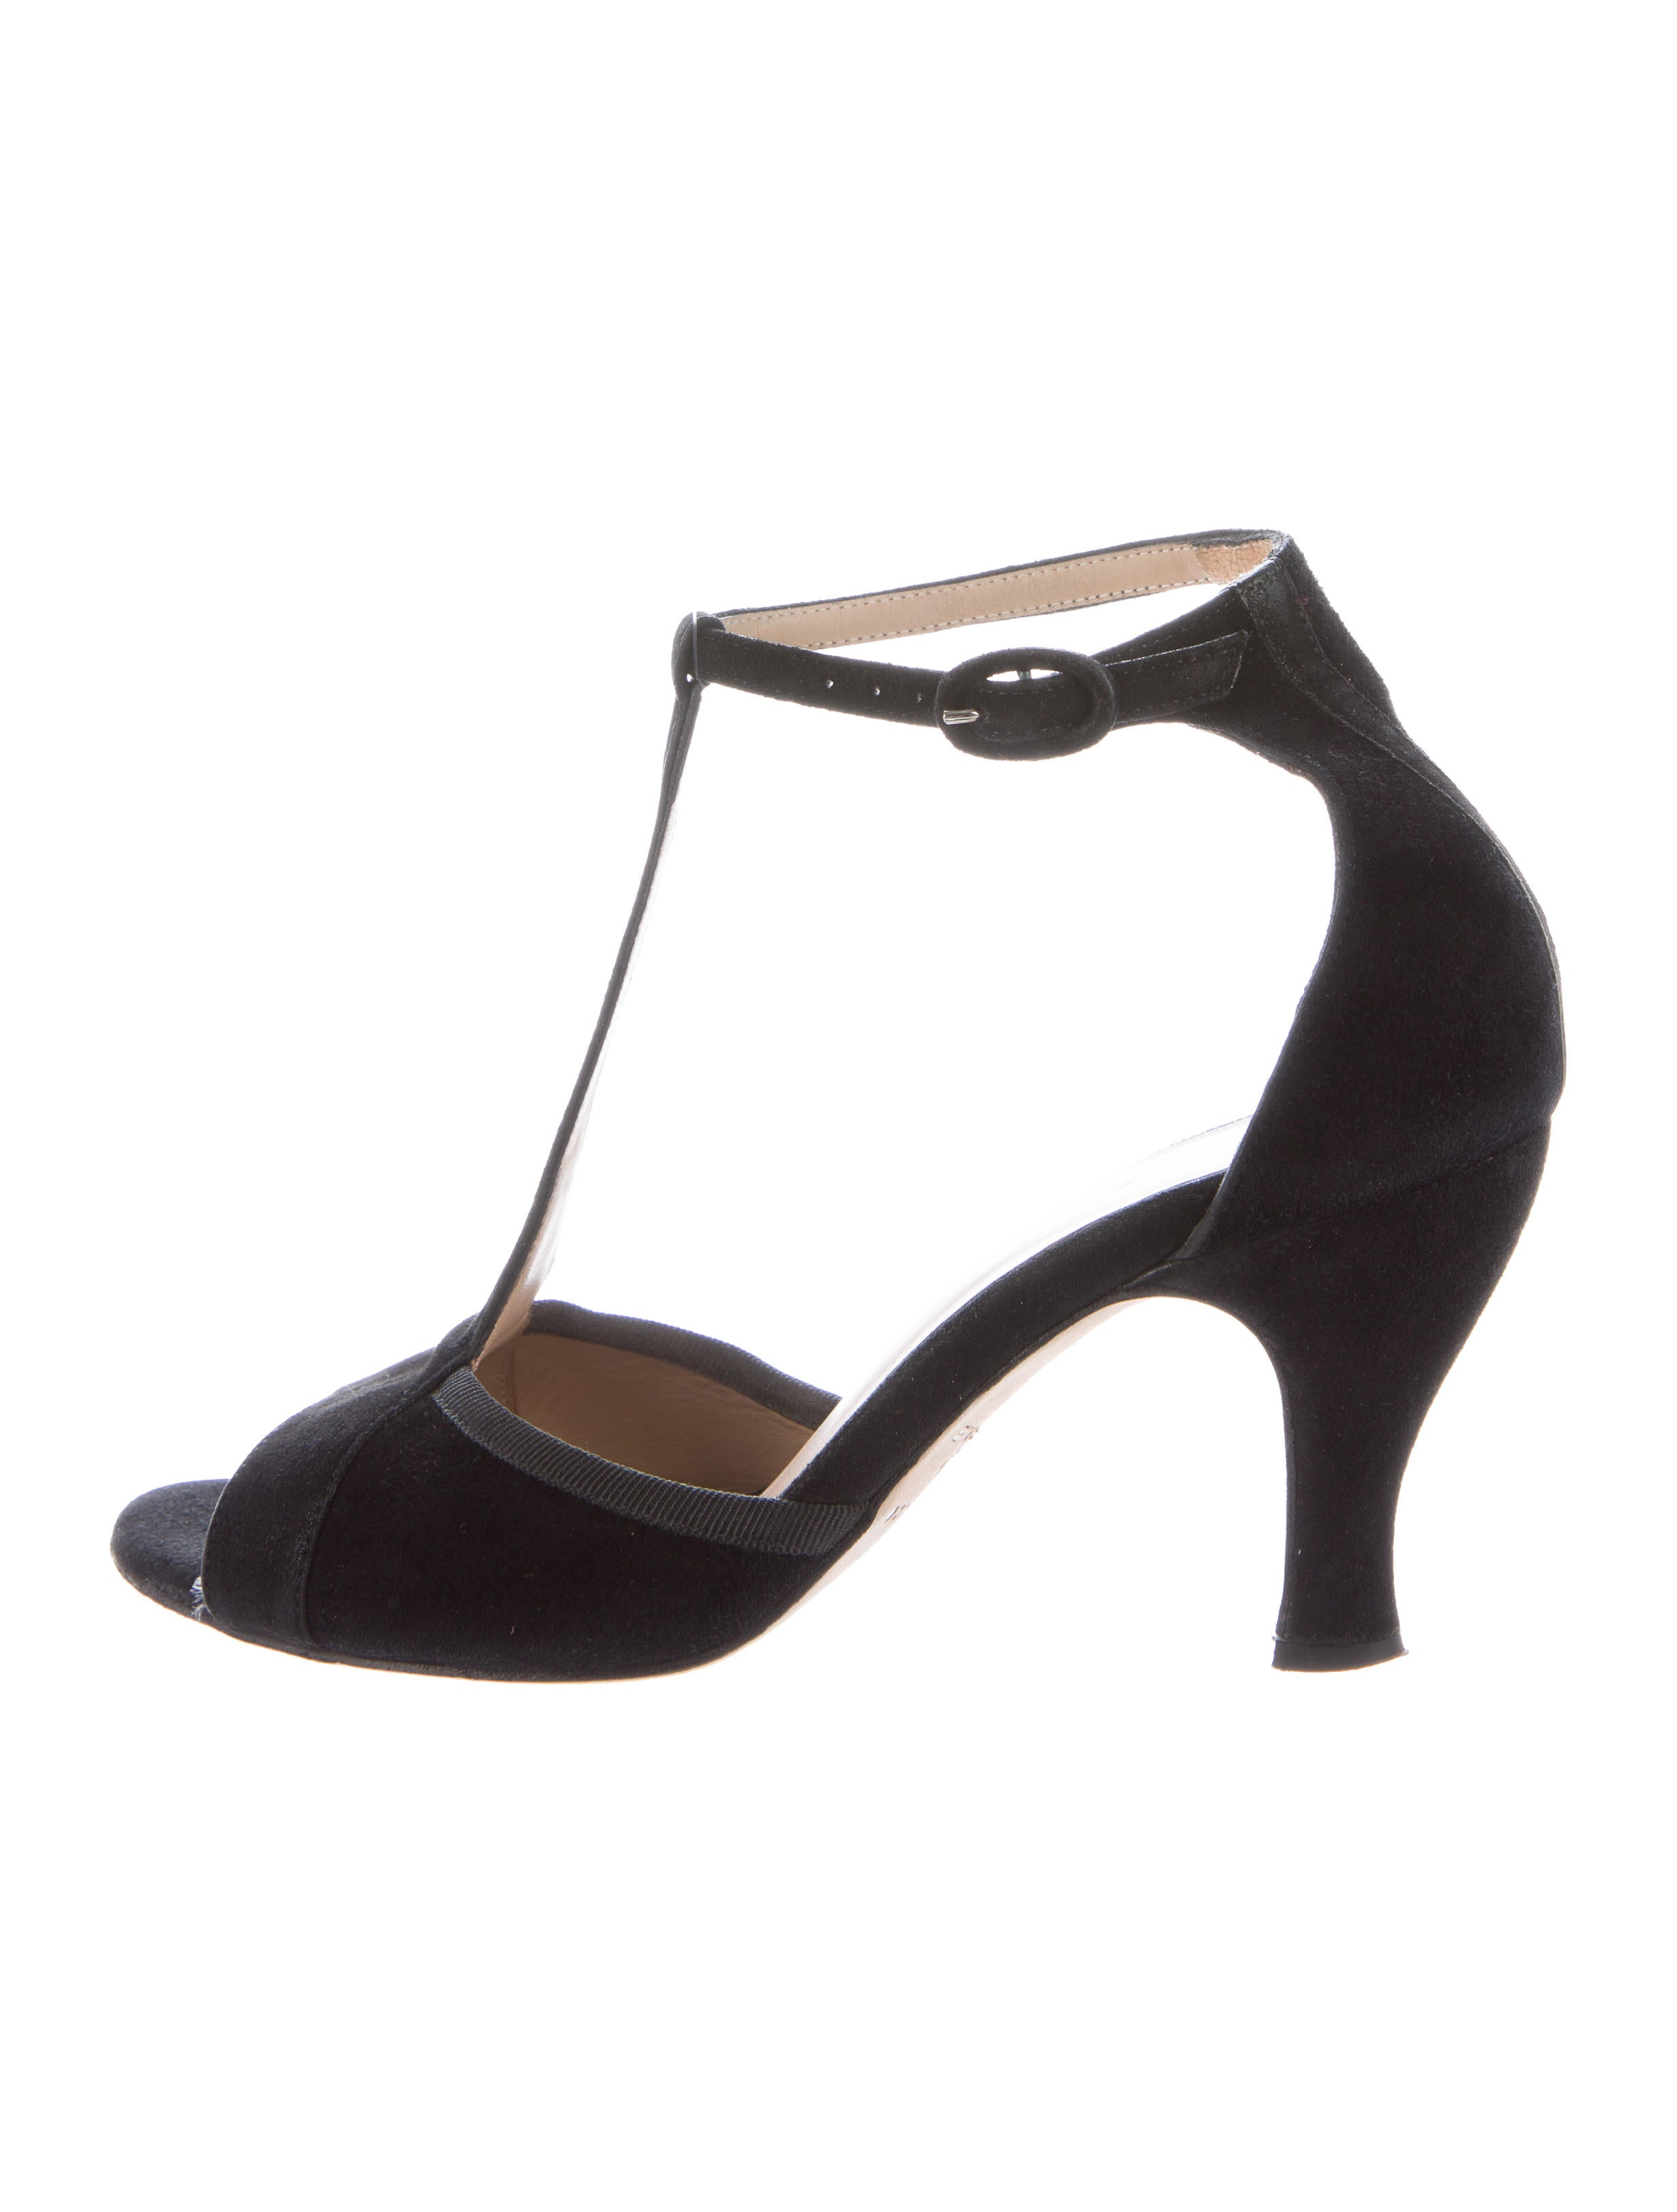 repetto suede t strap pumps shoes rep20951 the realreal. Black Bedroom Furniture Sets. Home Design Ideas